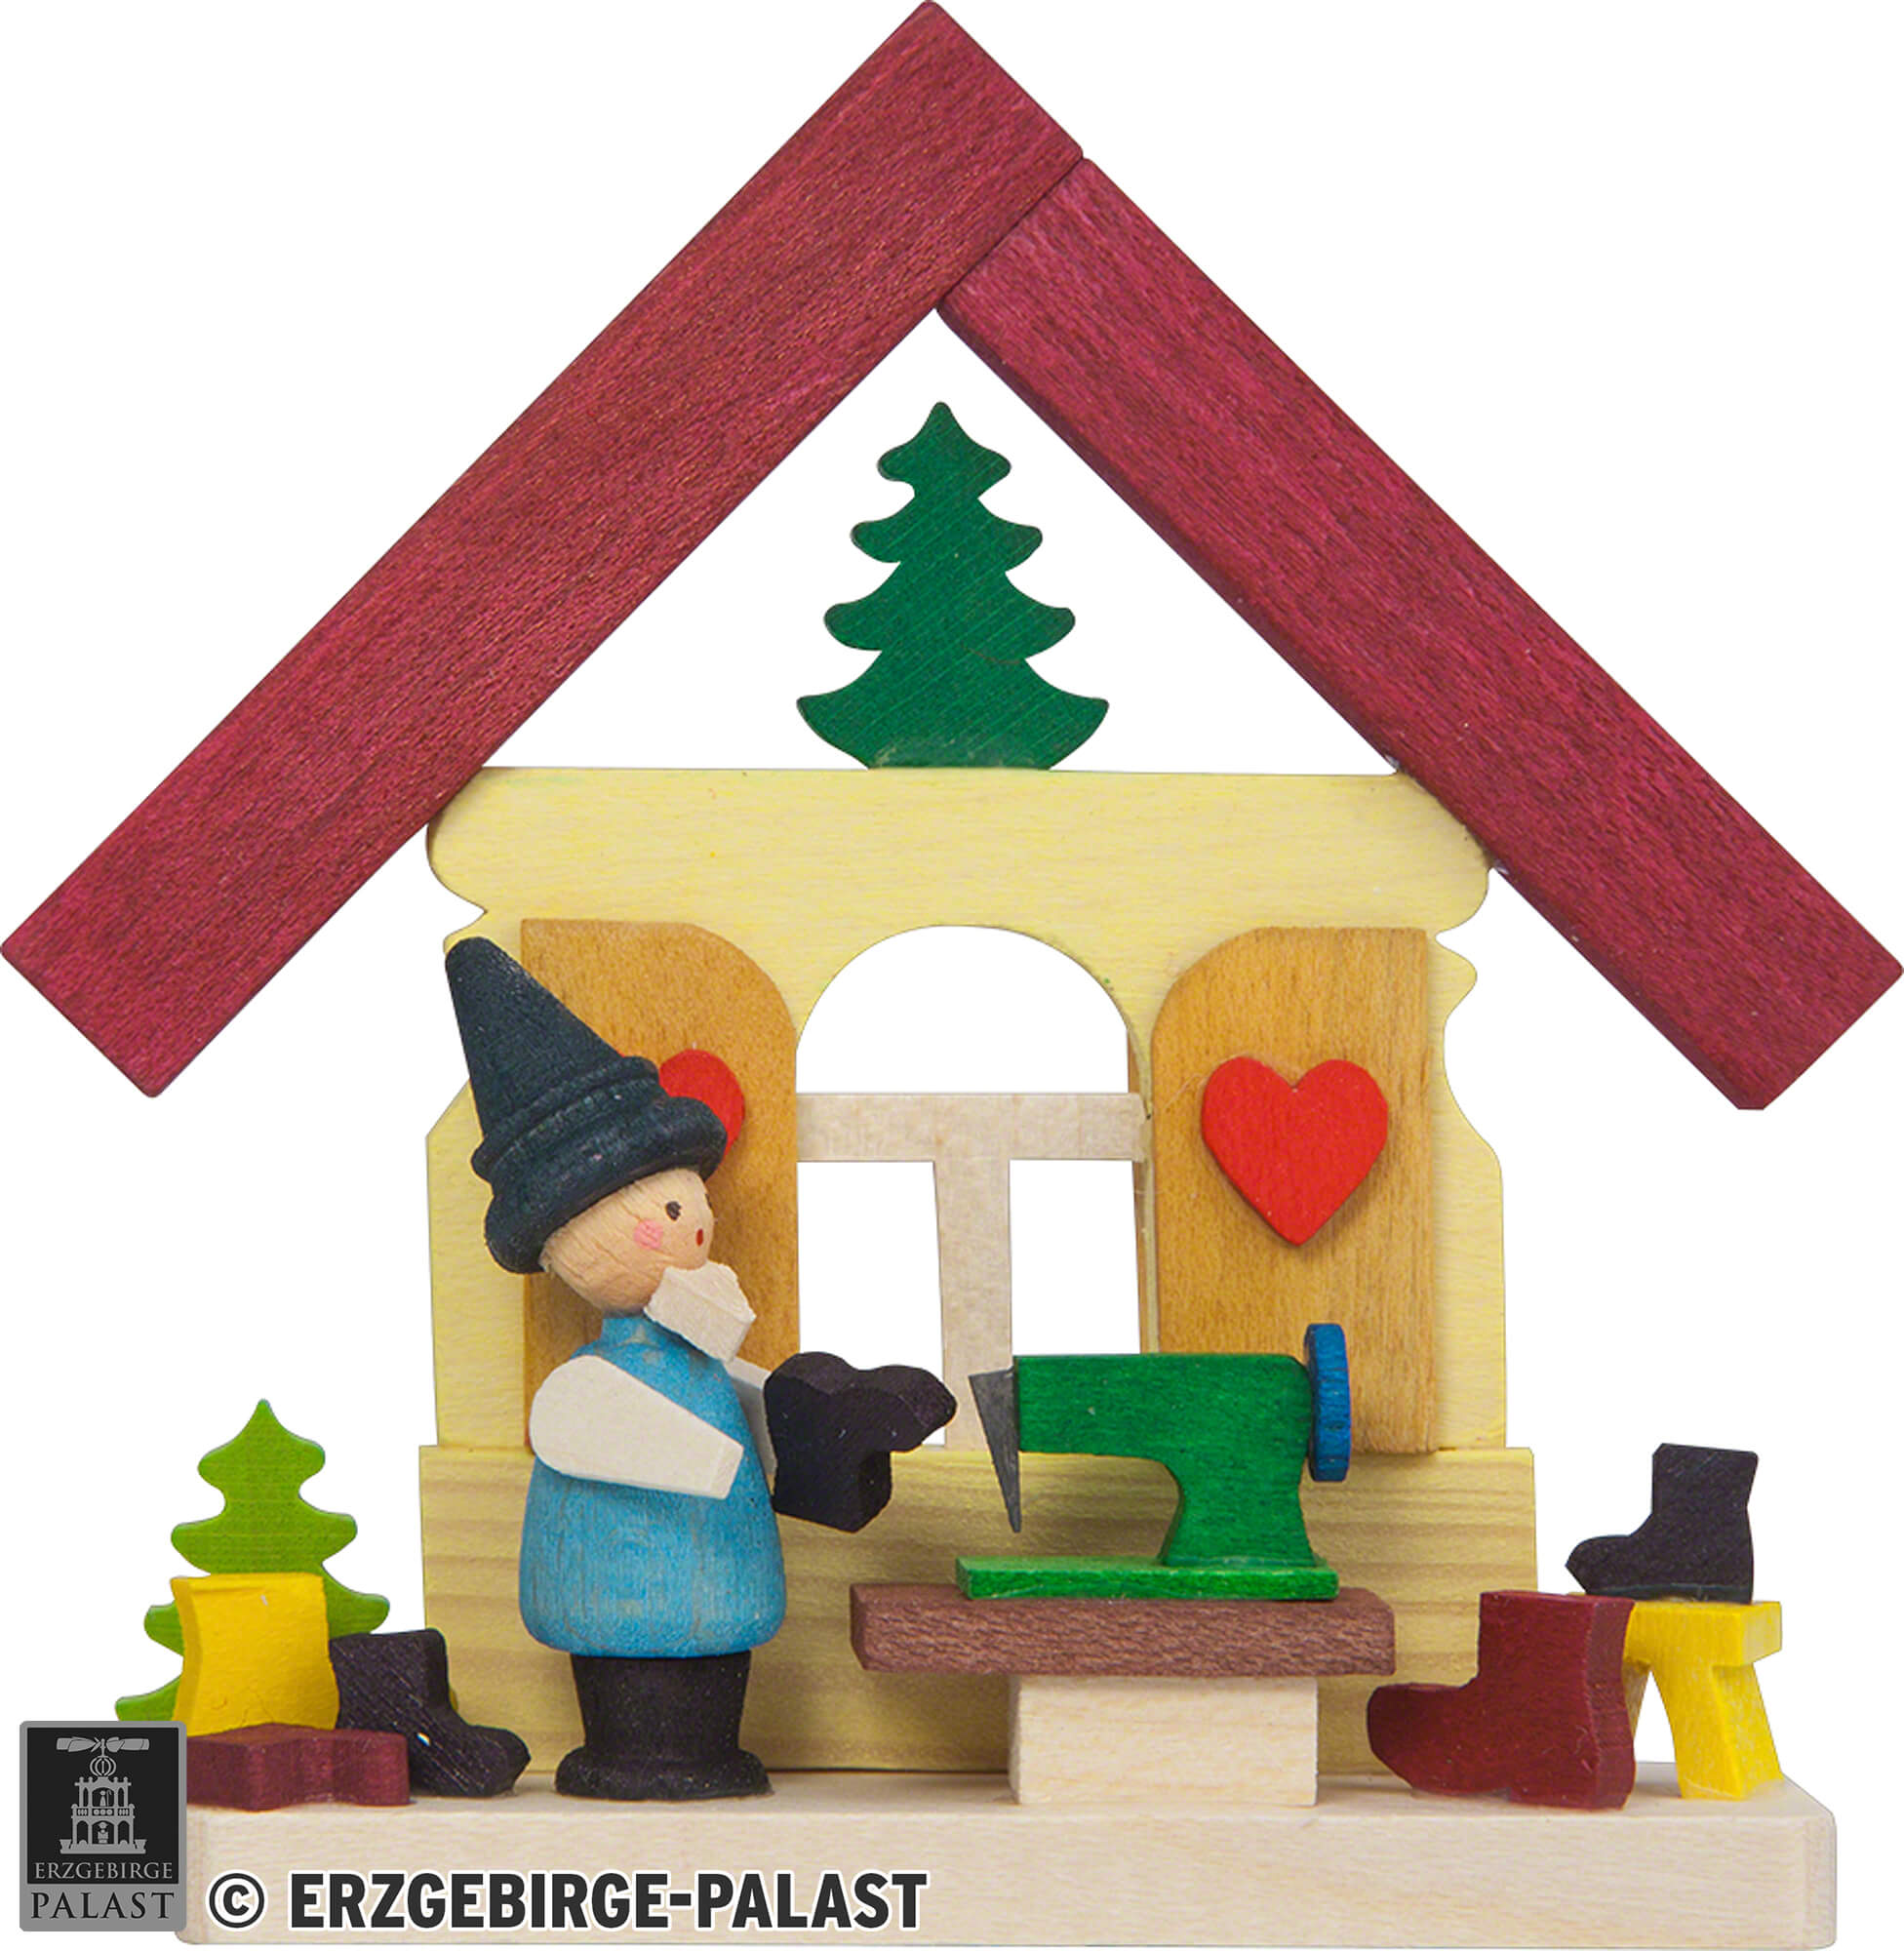 Tree Ornament House Dwarf with Sewing Machine 74 cm 29 inch 1588771483 4260645844414 101 41 810 41810